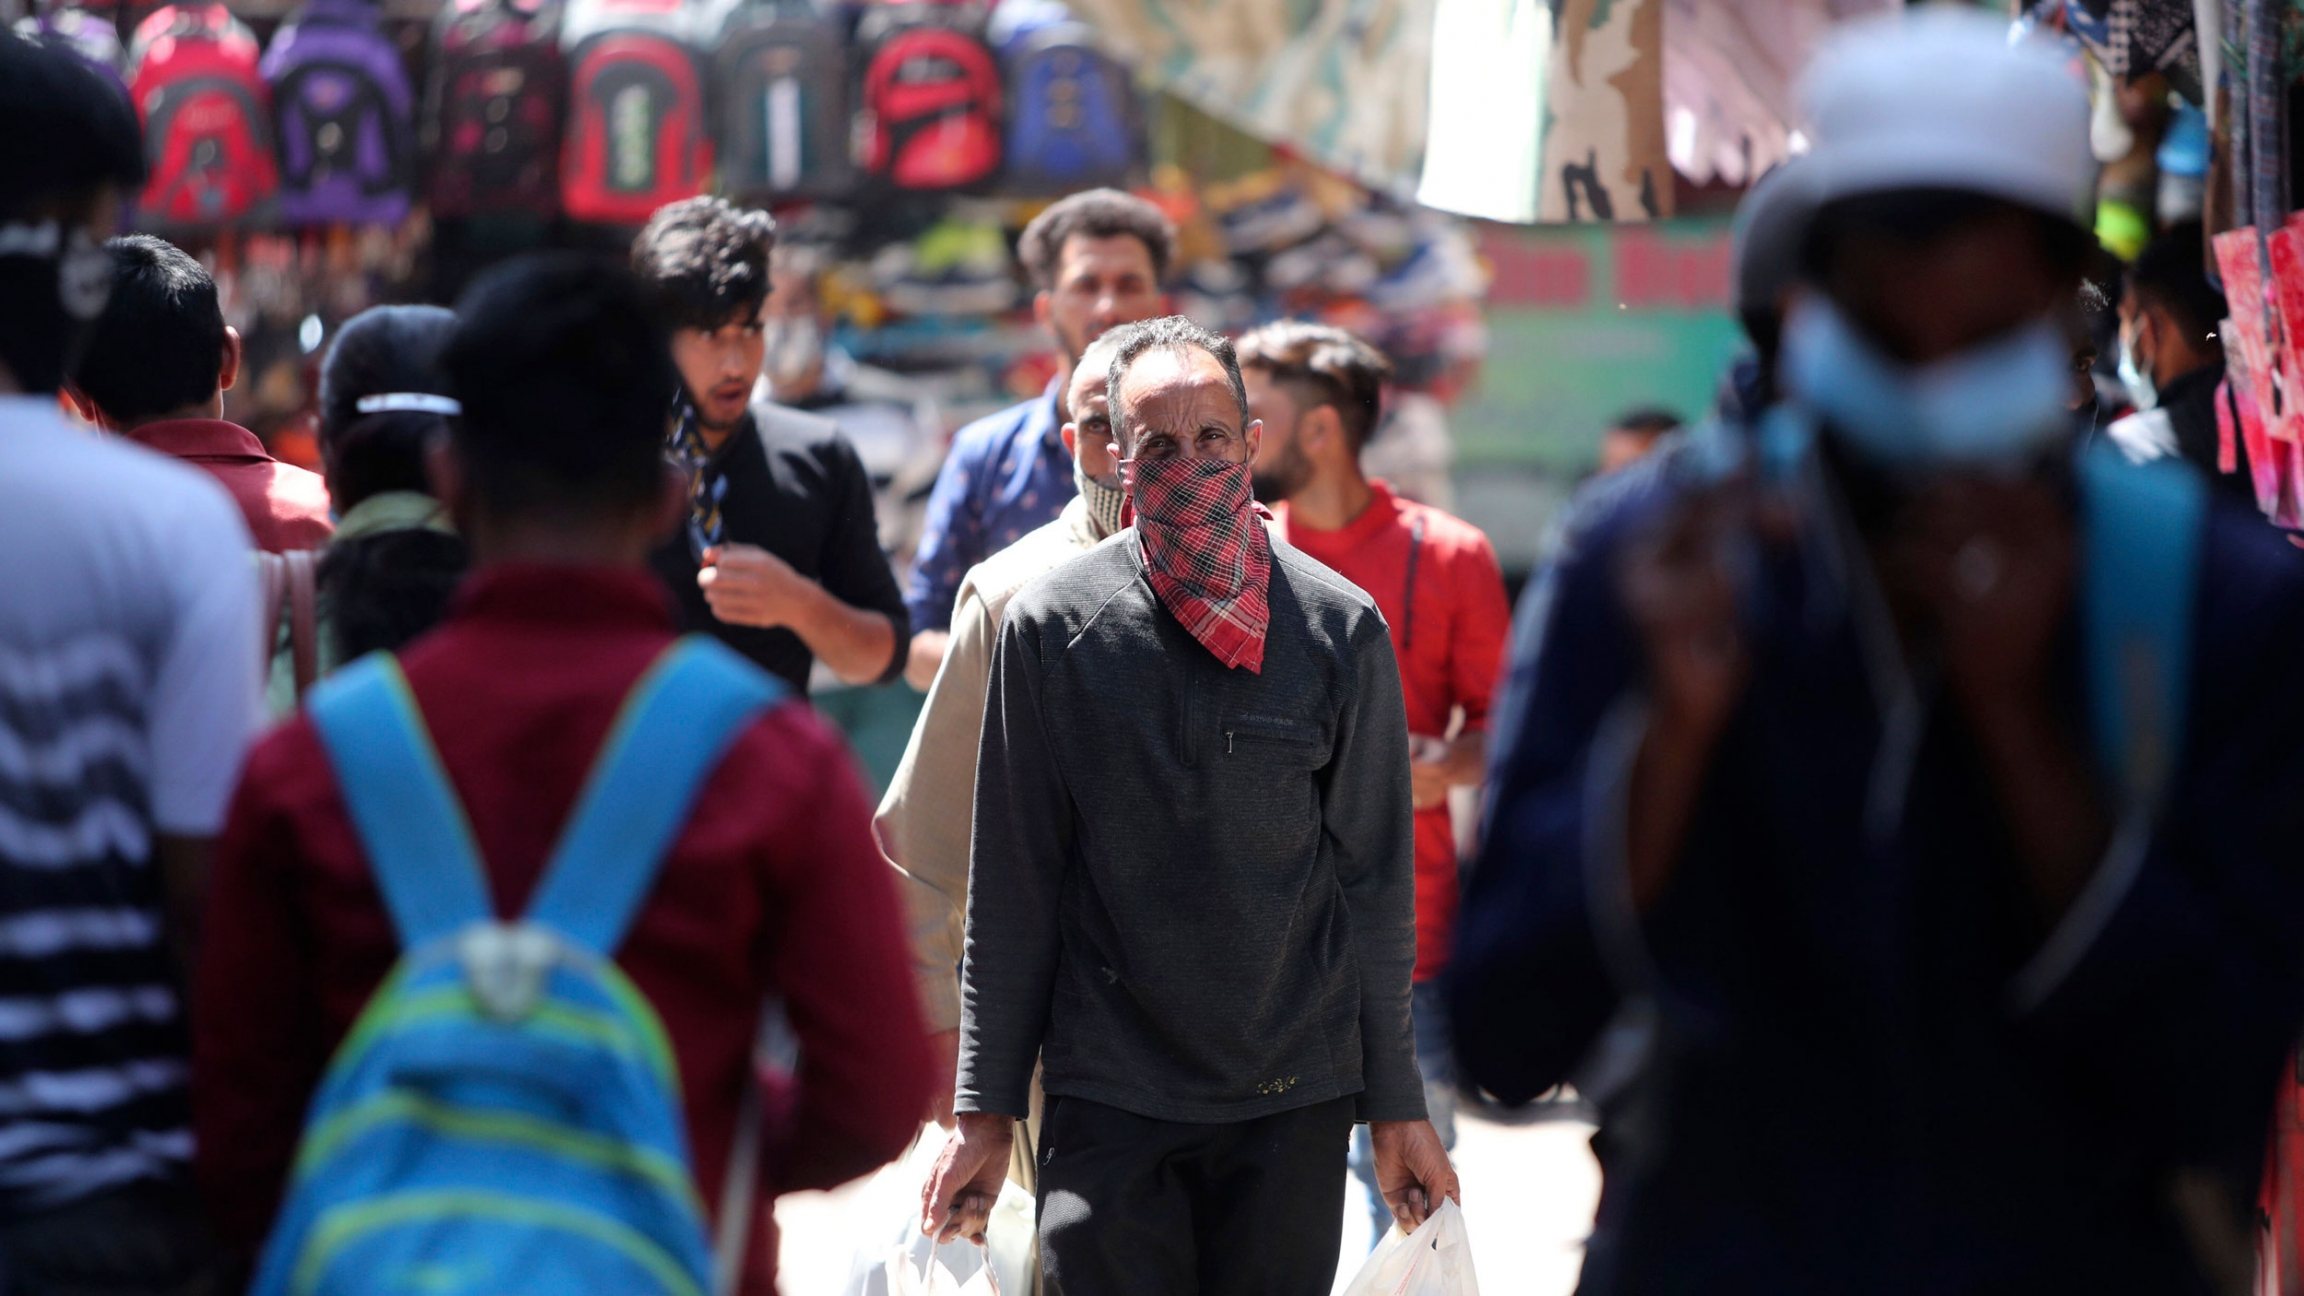 A crowd of people are shown in the street with one man in the center fram wearing a scarf over his face.